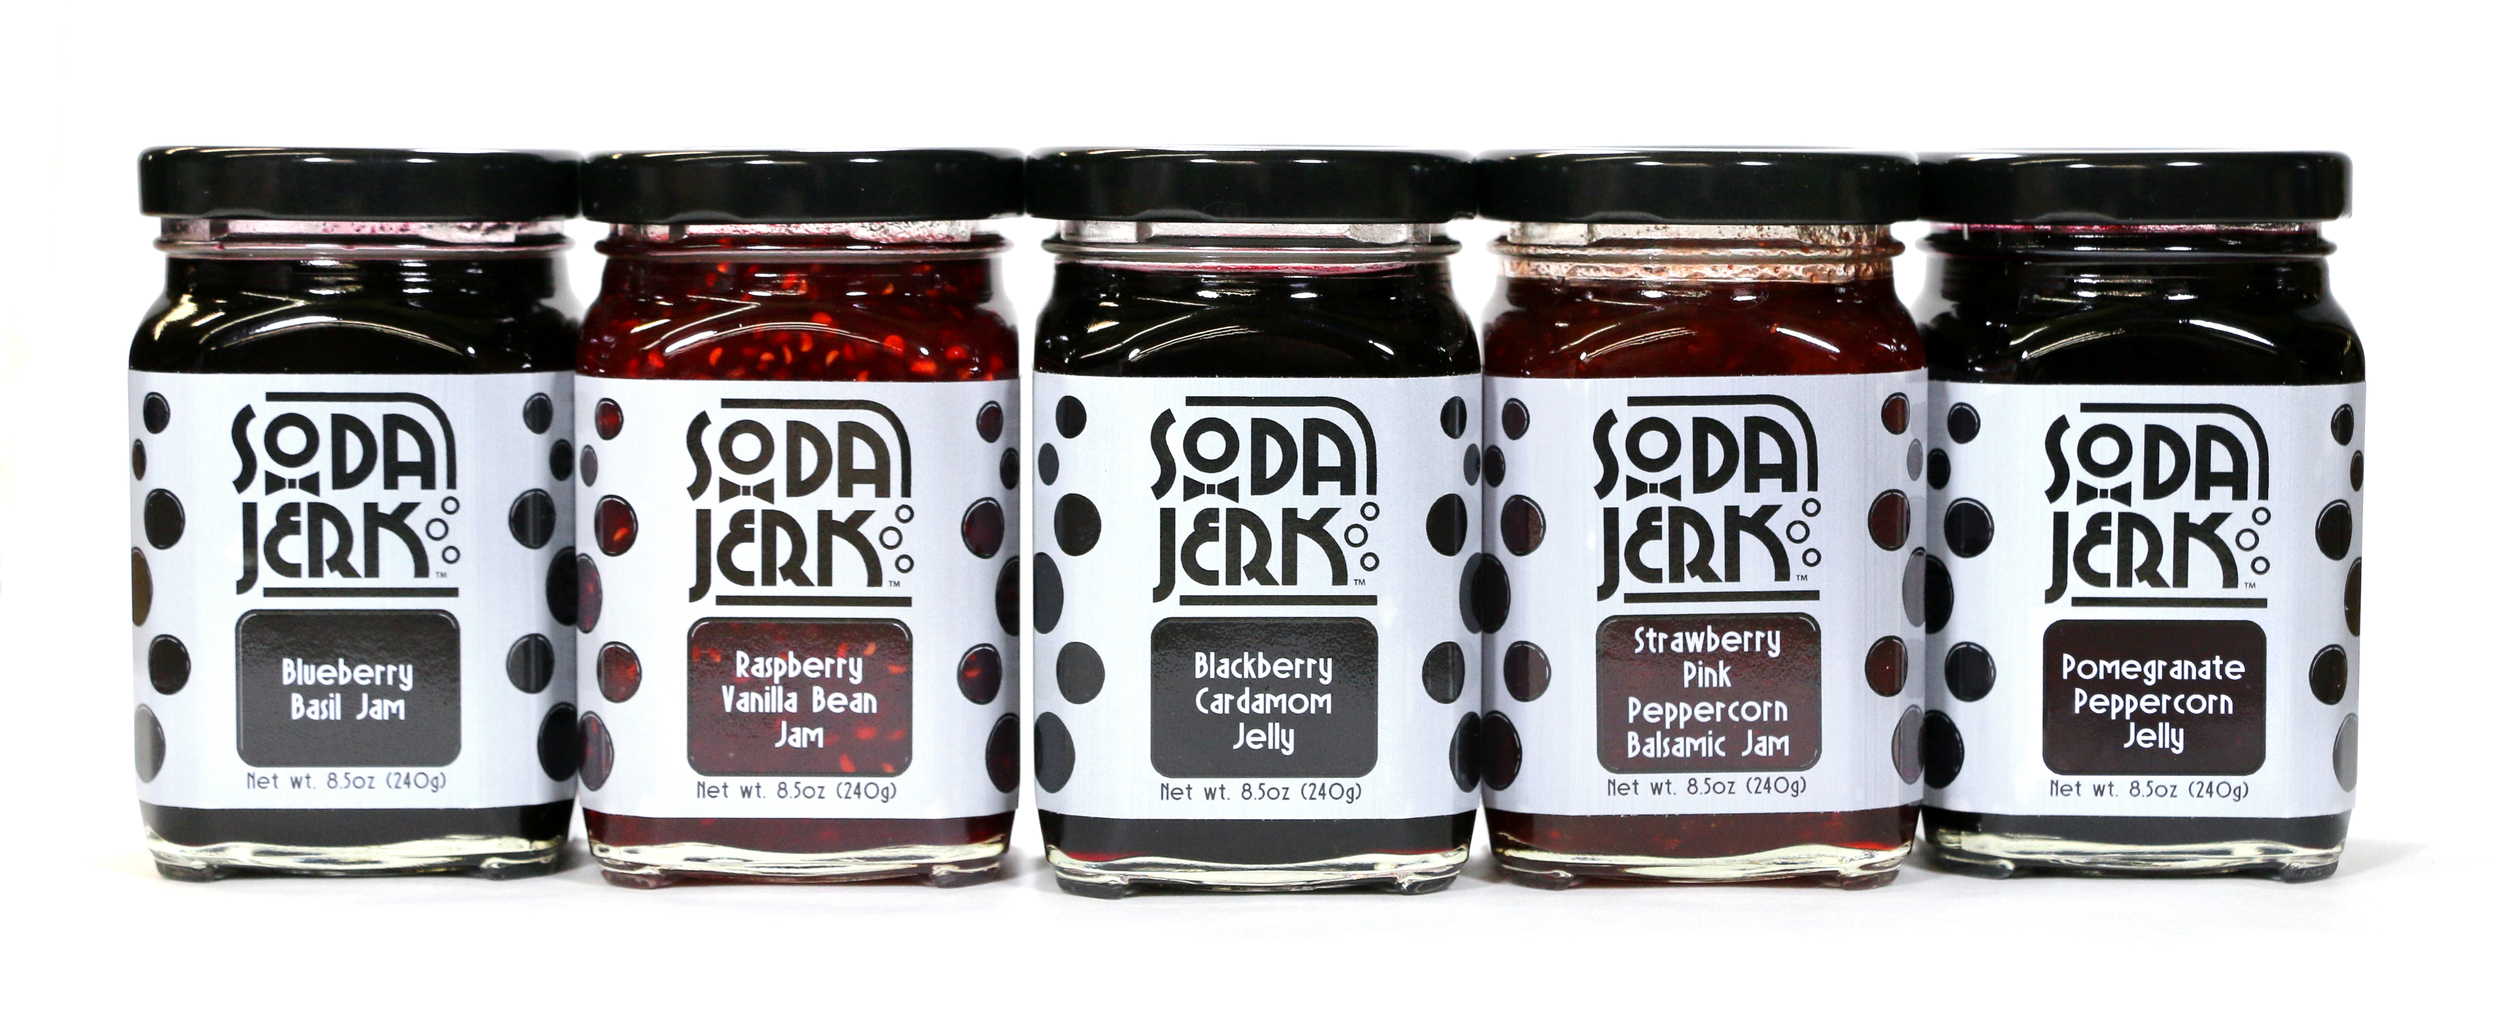 New jams and jellies from Soda Jerk Fresh Sodas at Ballard Farmers Market. Photo courtesy Soda Jerk Fresh Sodas.